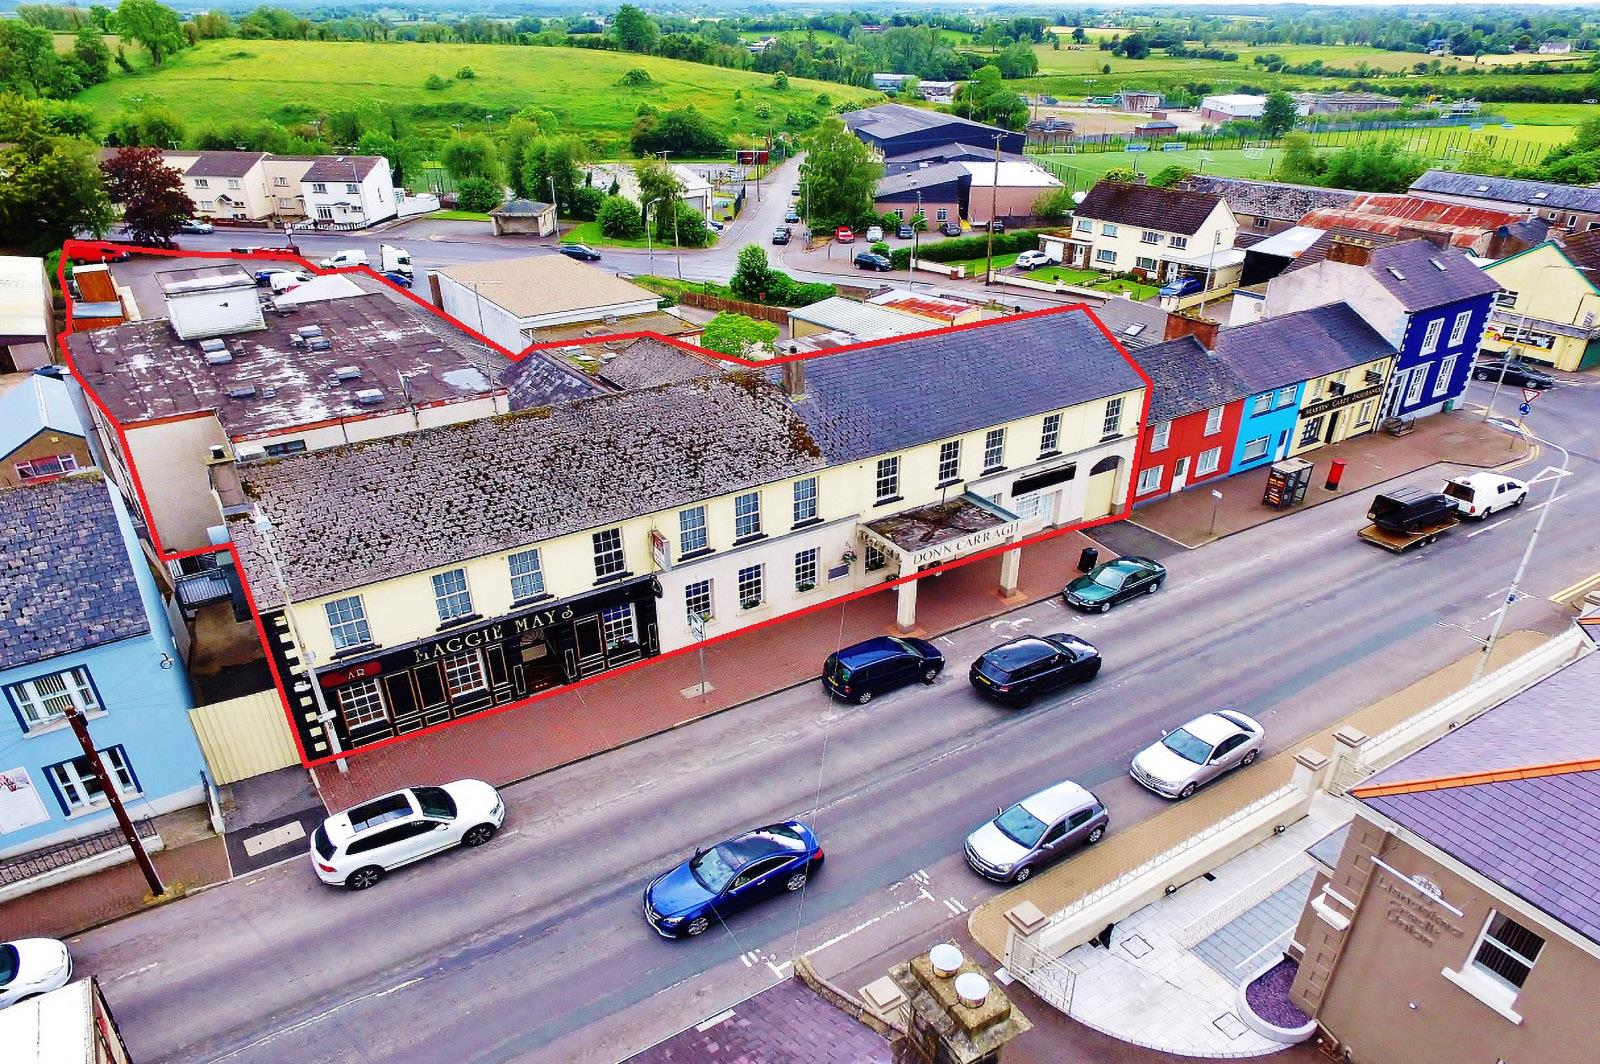 'The Donn Carragh Hotel', 95-97 Main Street, Lisnaskea , County Fermanagh, BT92